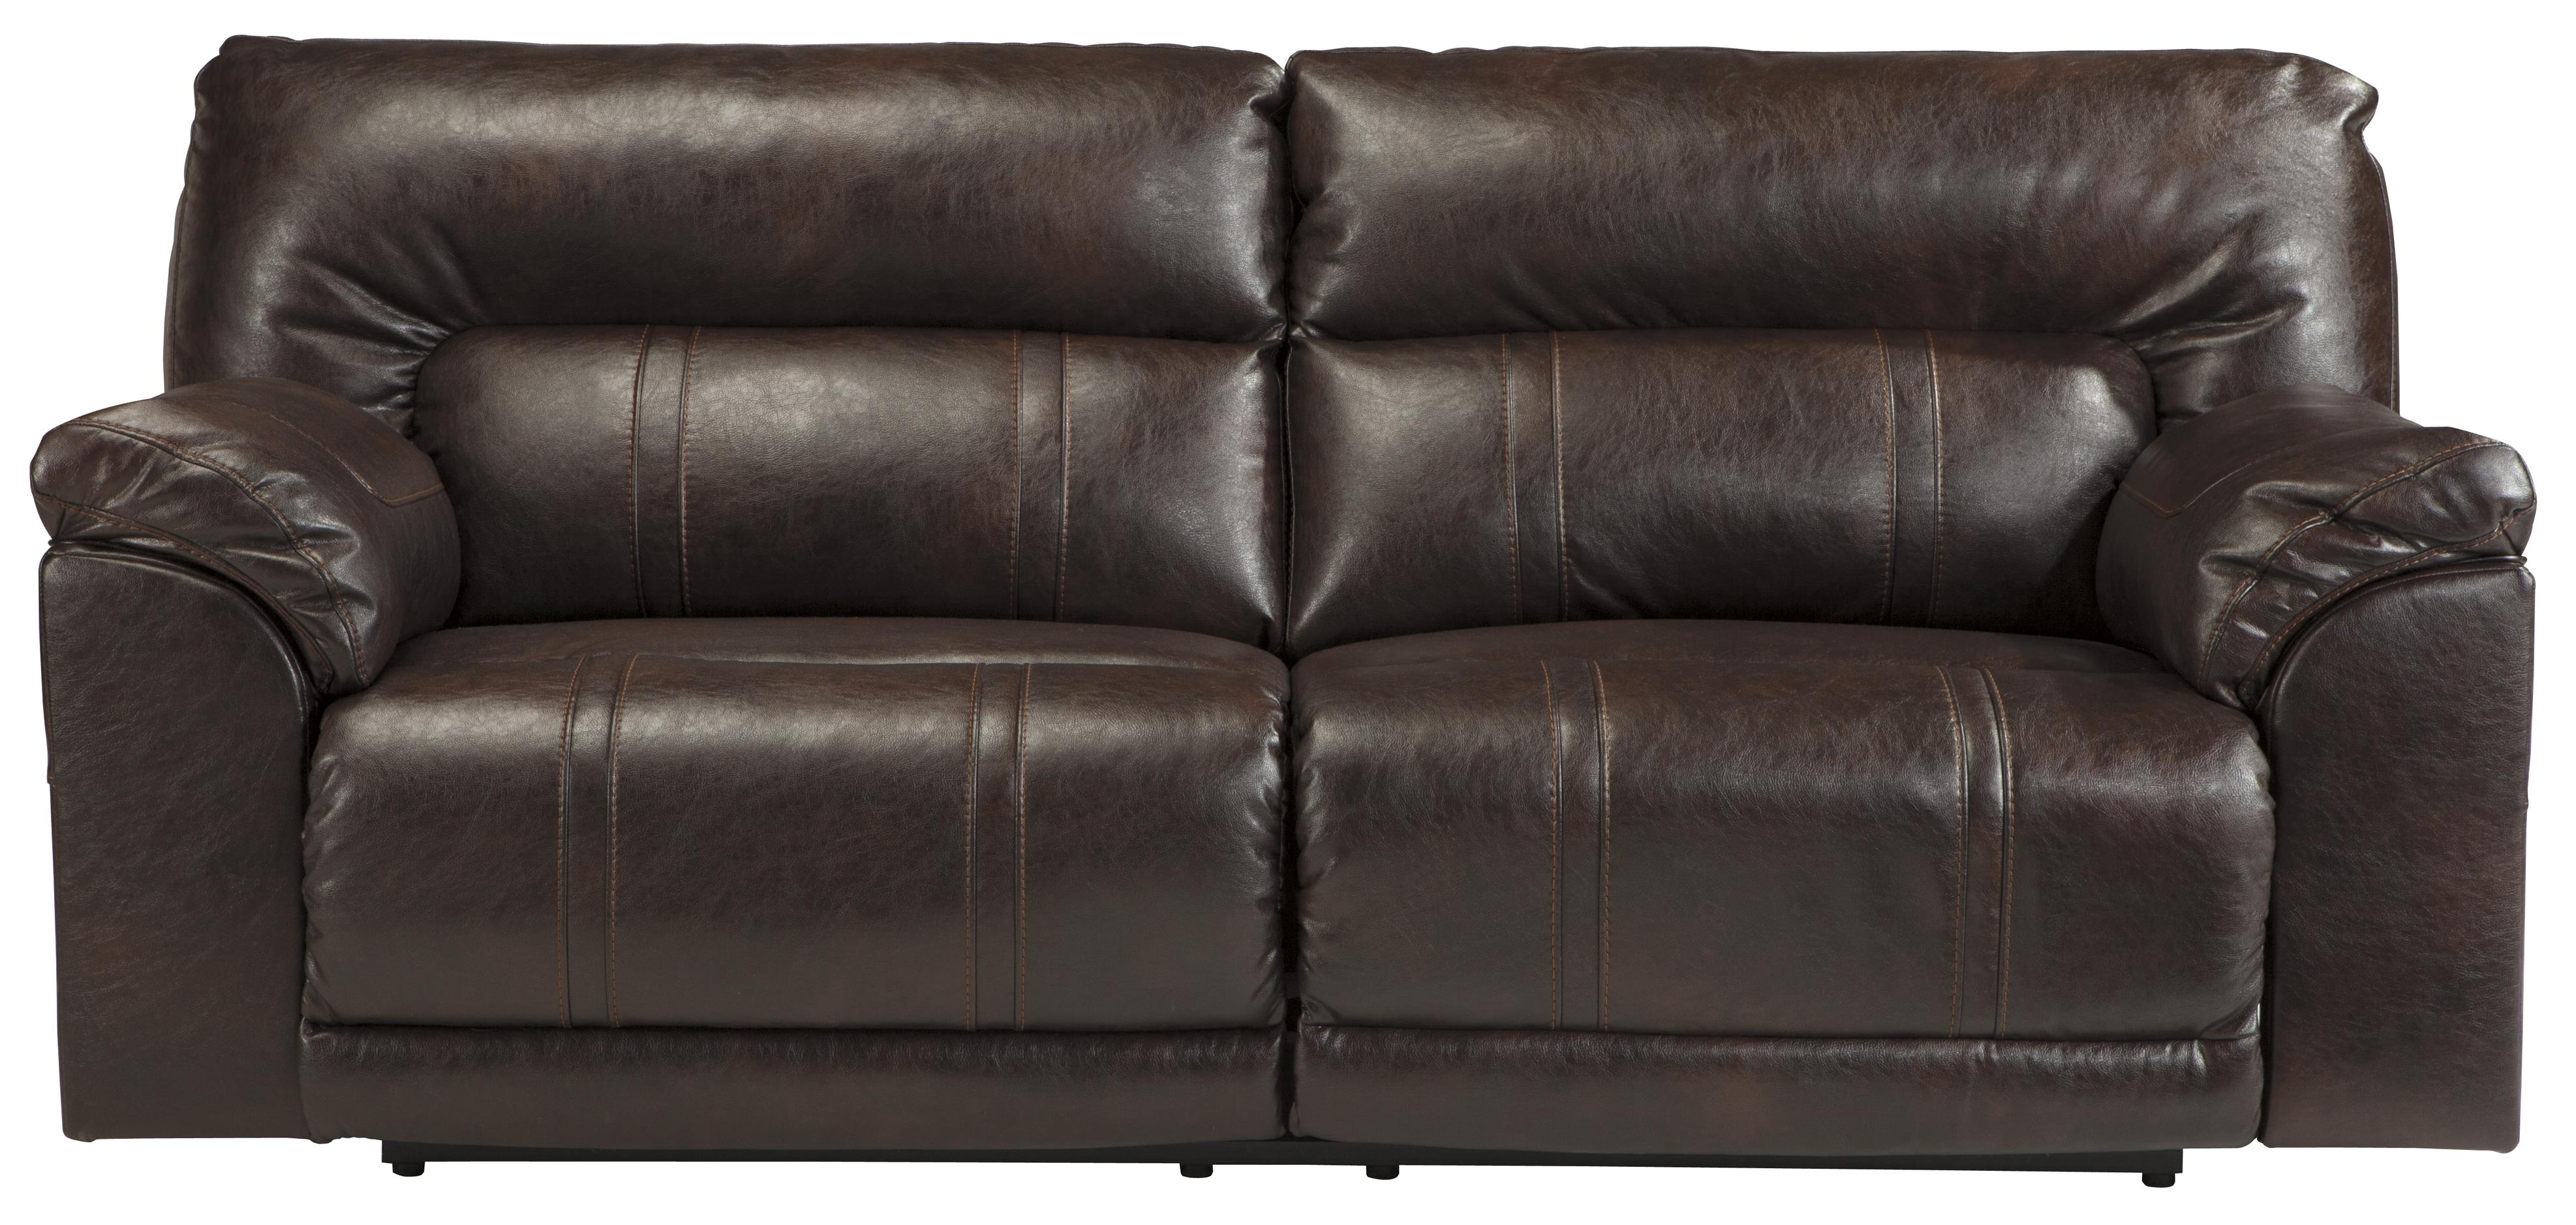 spartan sofa table benchcraft 4730181 bonded leather match 2 seat